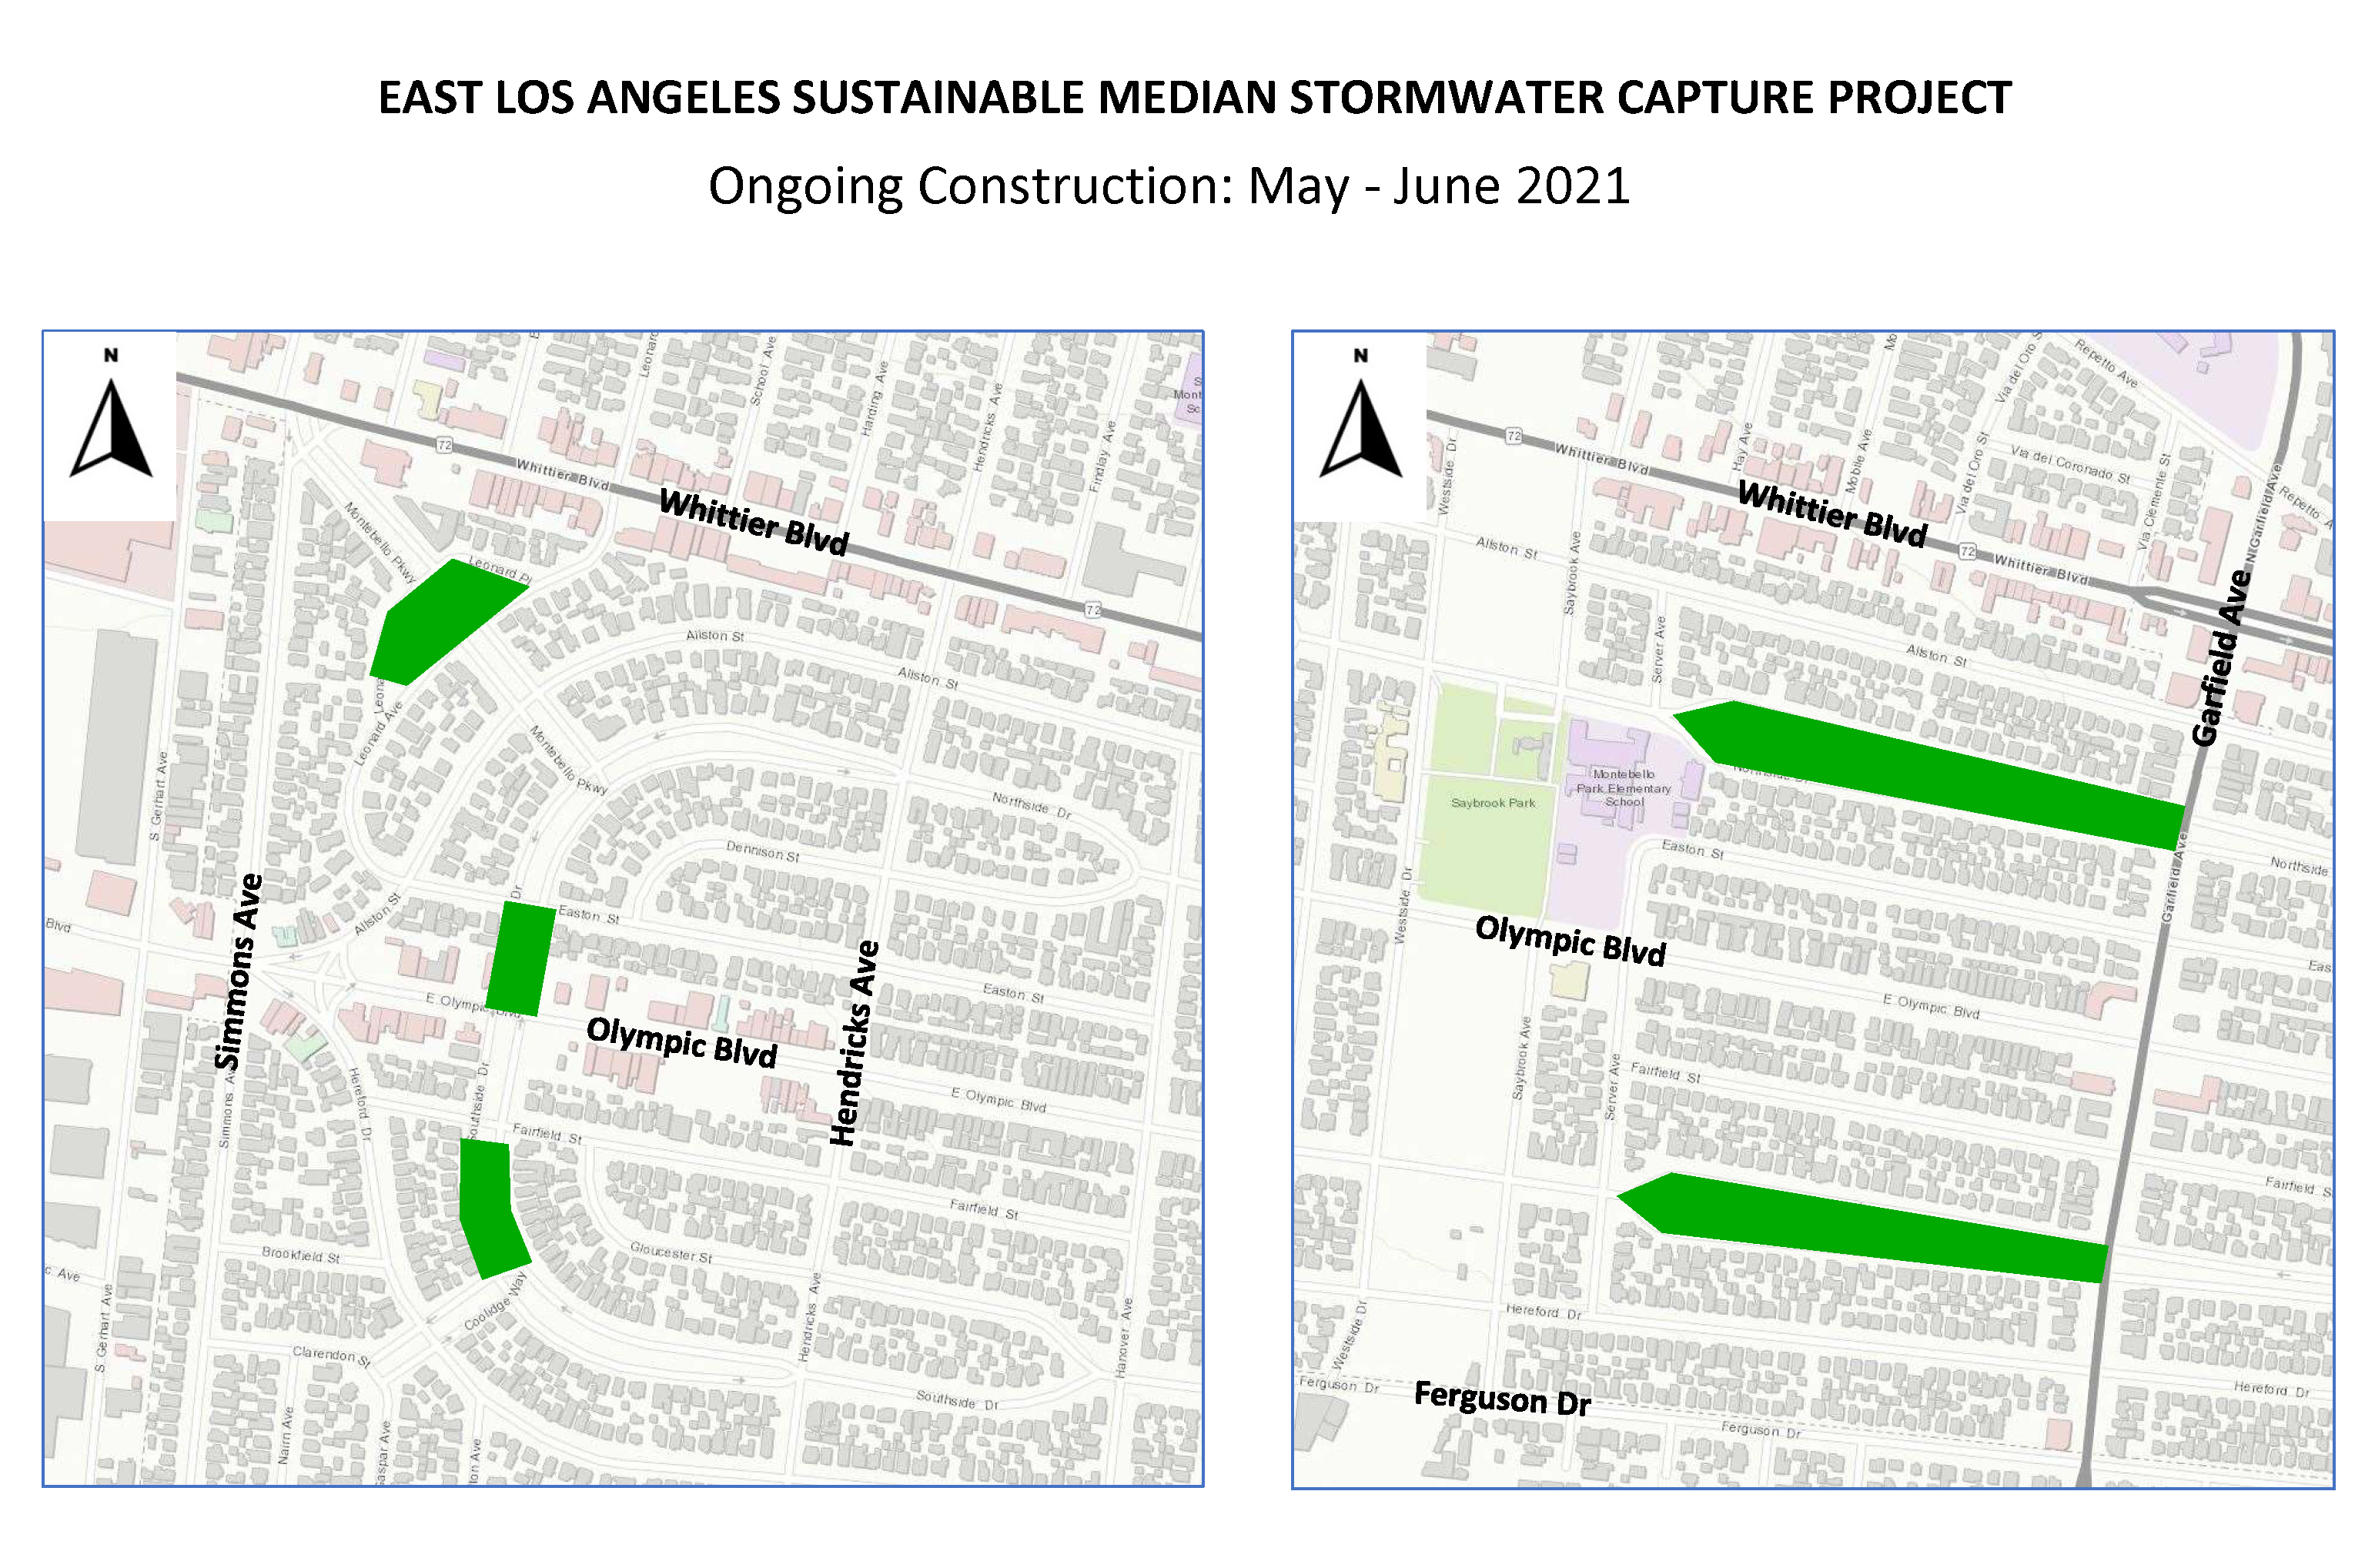 Map of East Los Angeles Sustainable Median Stormwater Capture Project. Image: Los Angeles County Public Works